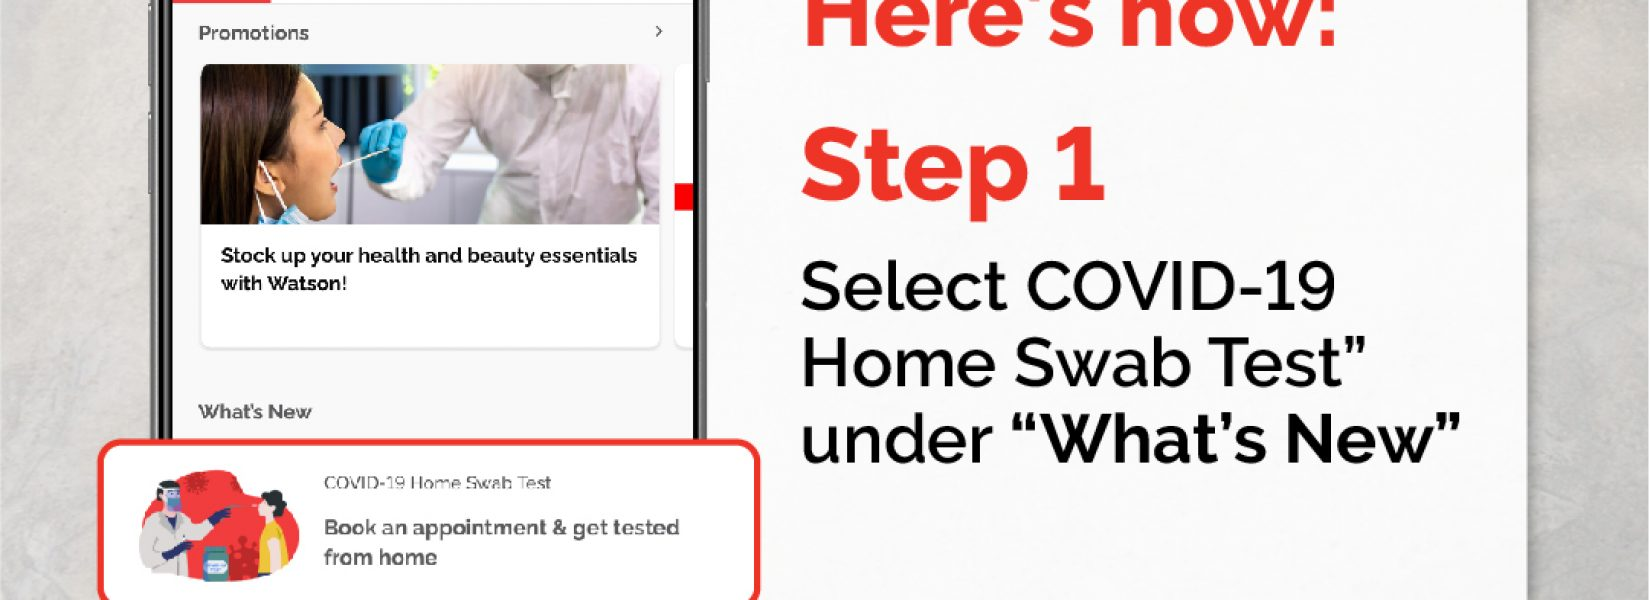 Boost launches new in-app booking for COVID-19 home swab tests